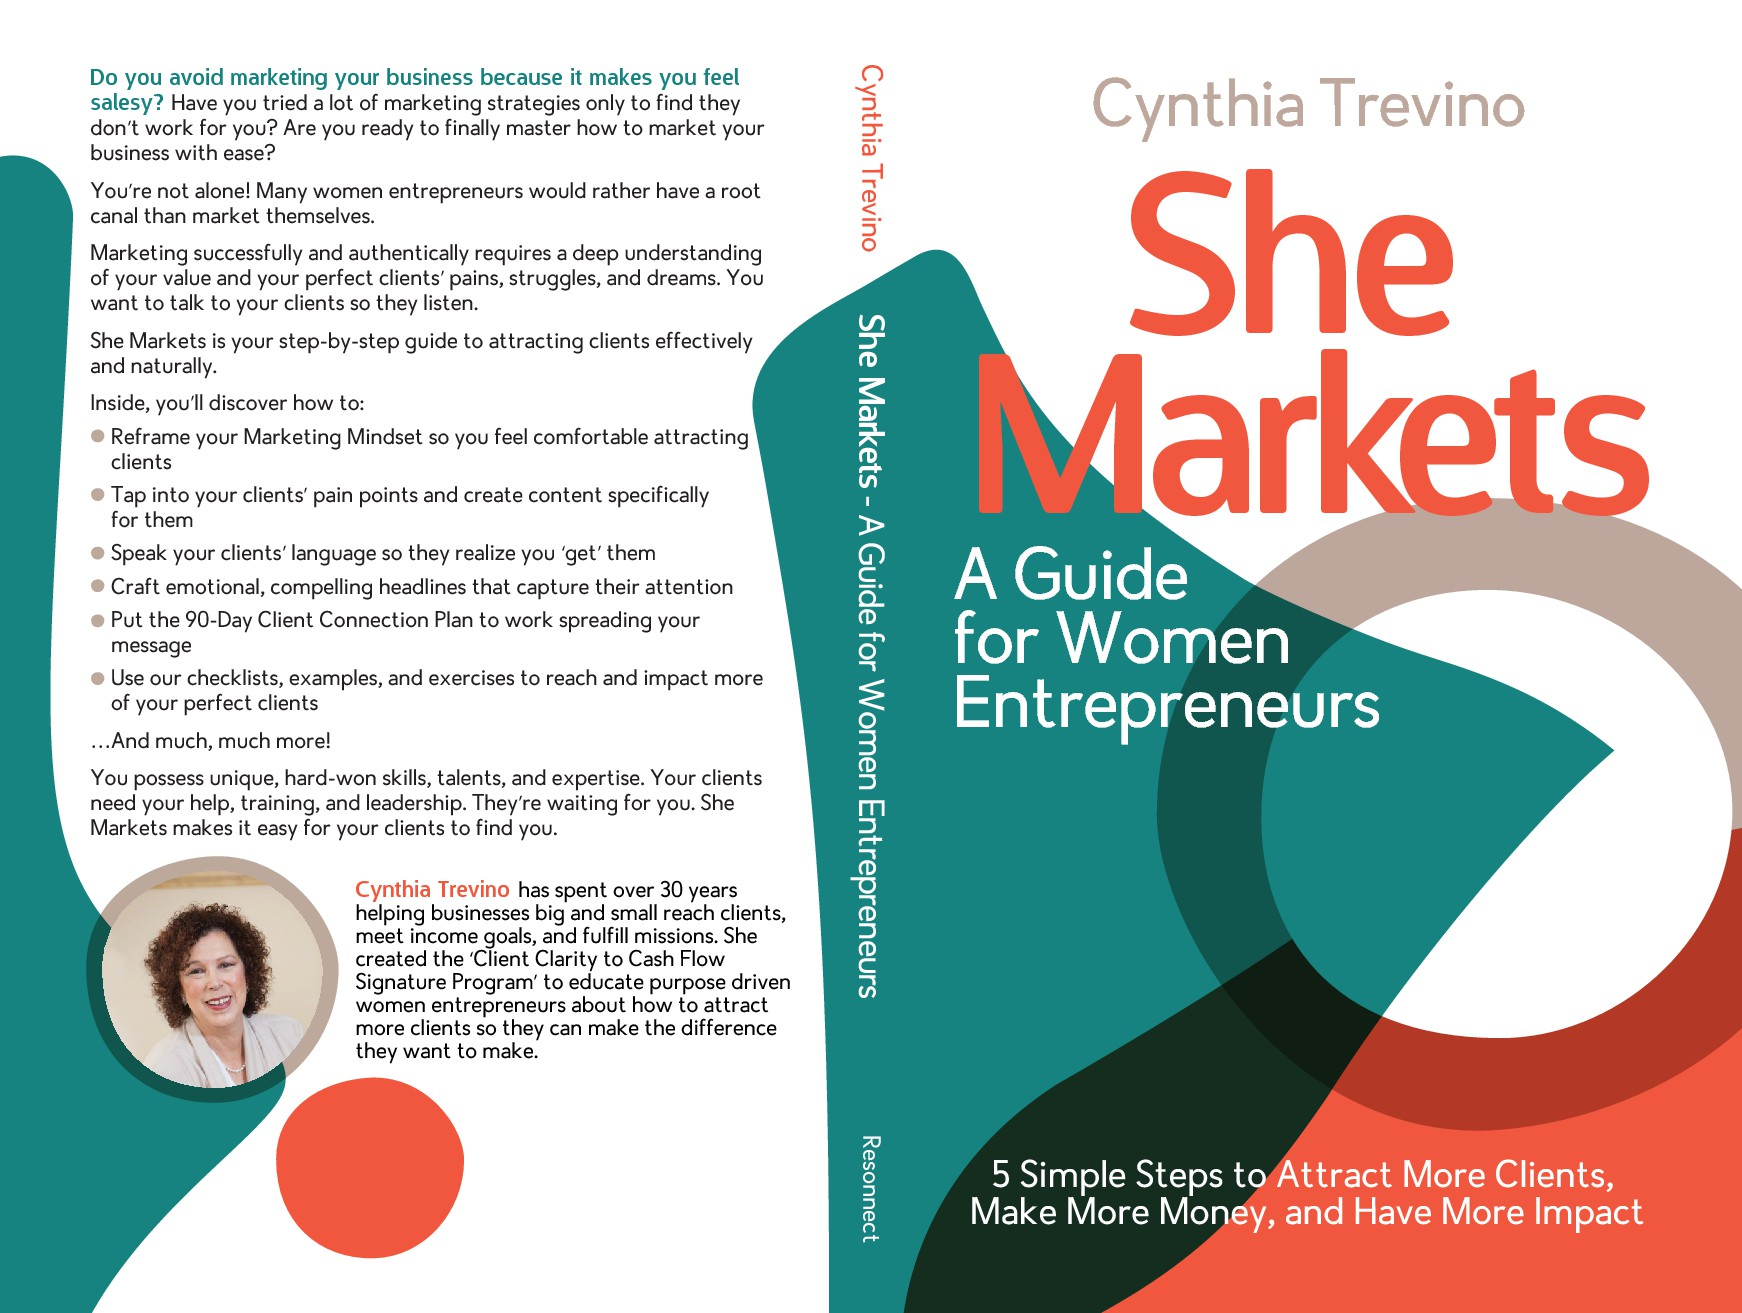 Book cover to attract women entrepreneurs